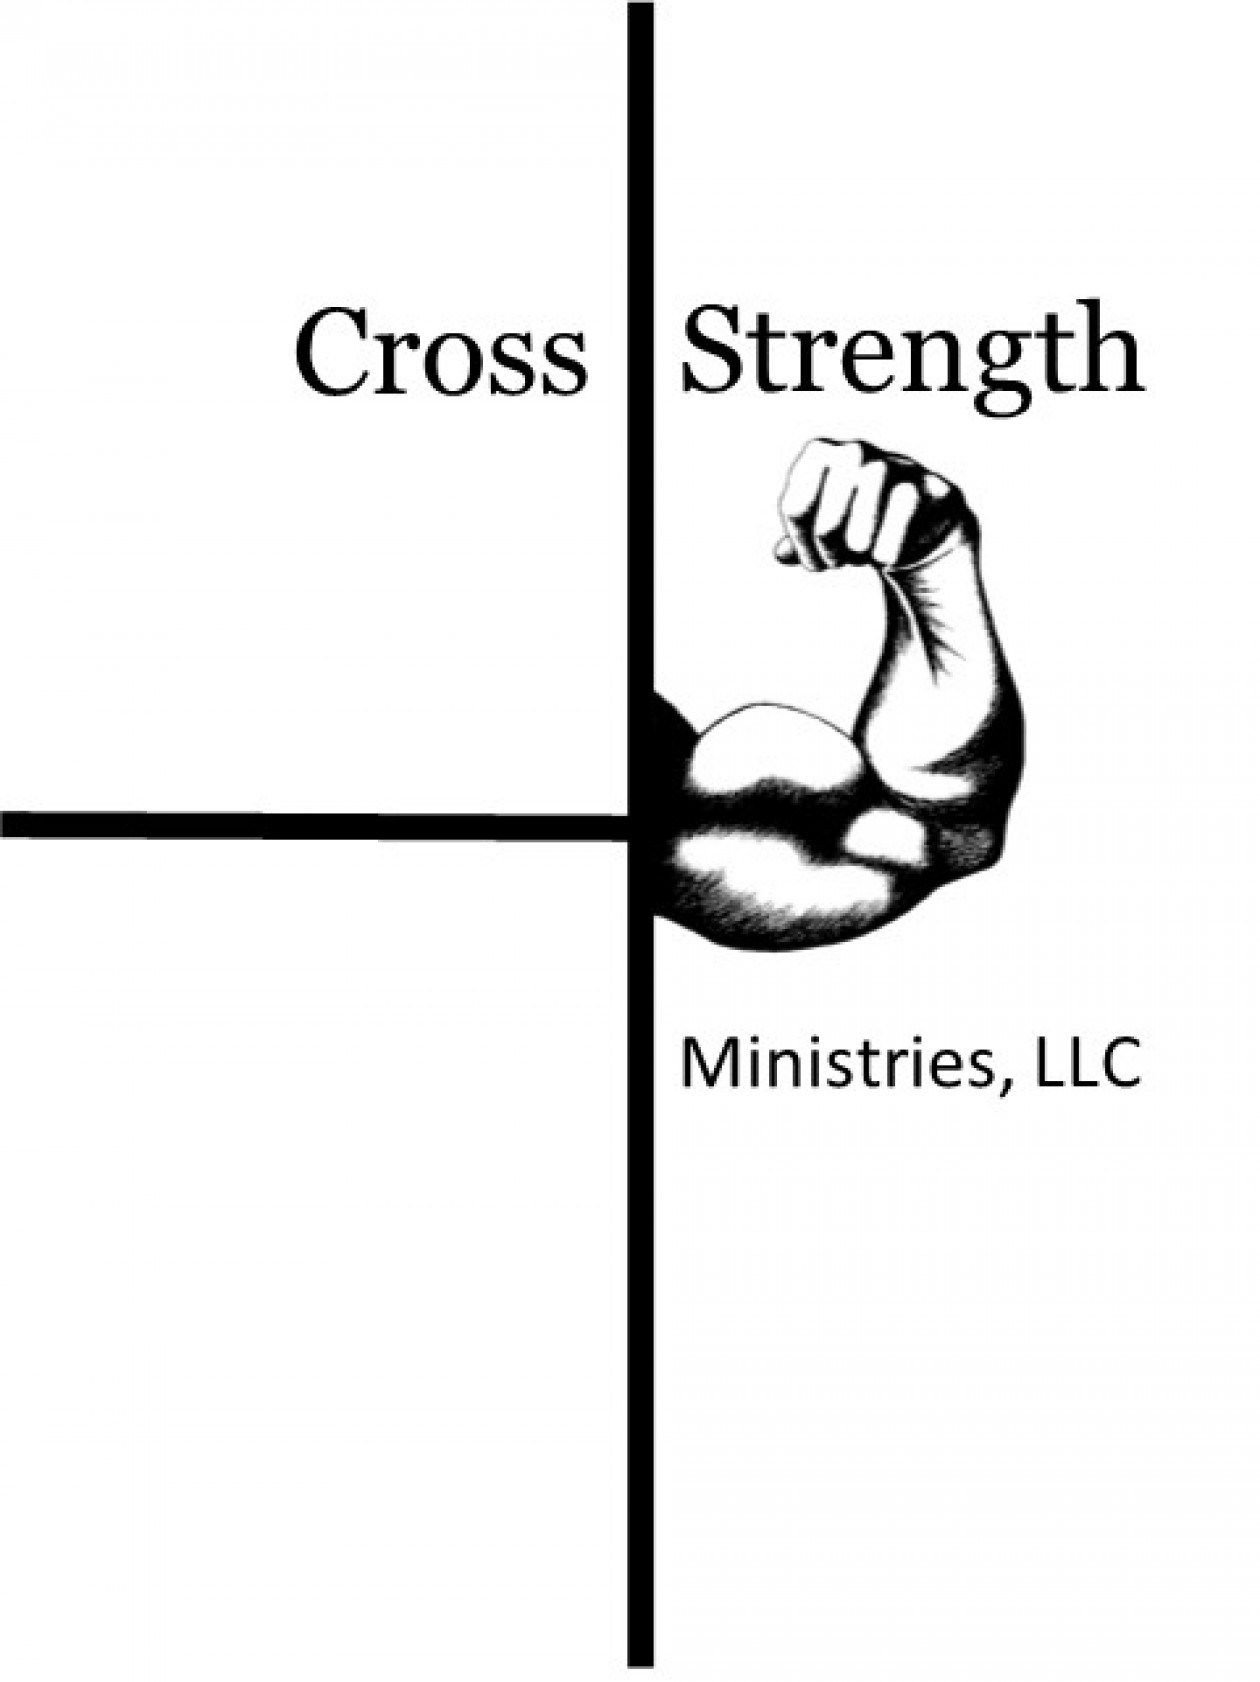 About The Ministry | Cross Strength Ministries